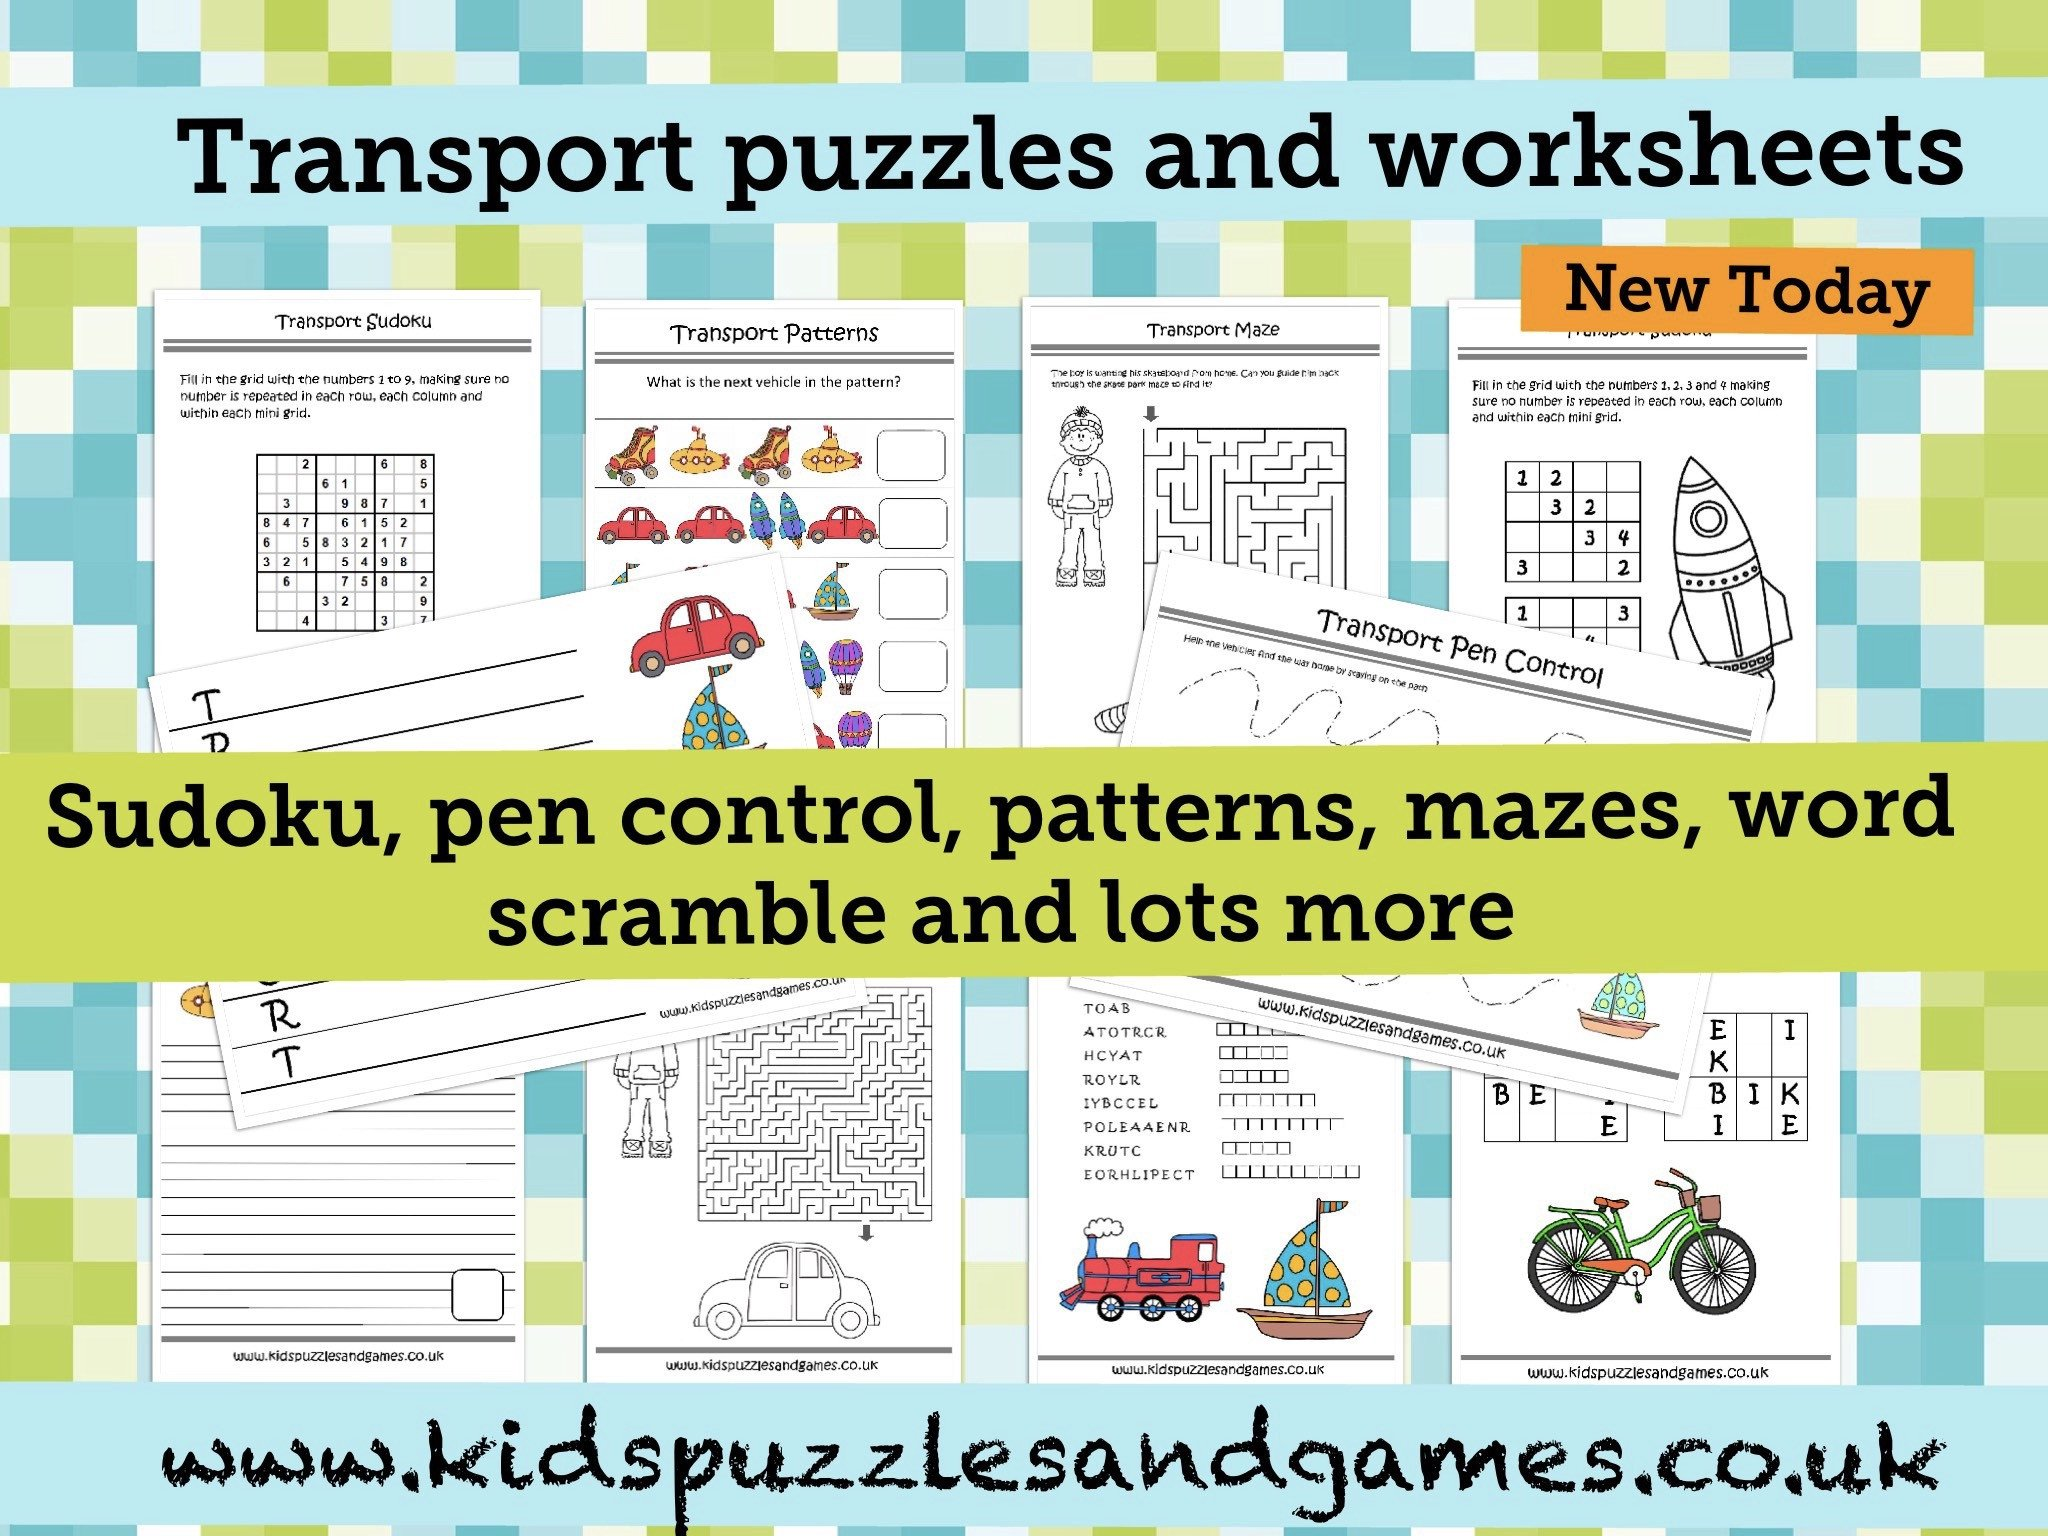 Pen Control Worksheets All New Transport Puzzles and Worksheets Kids Puzzles and